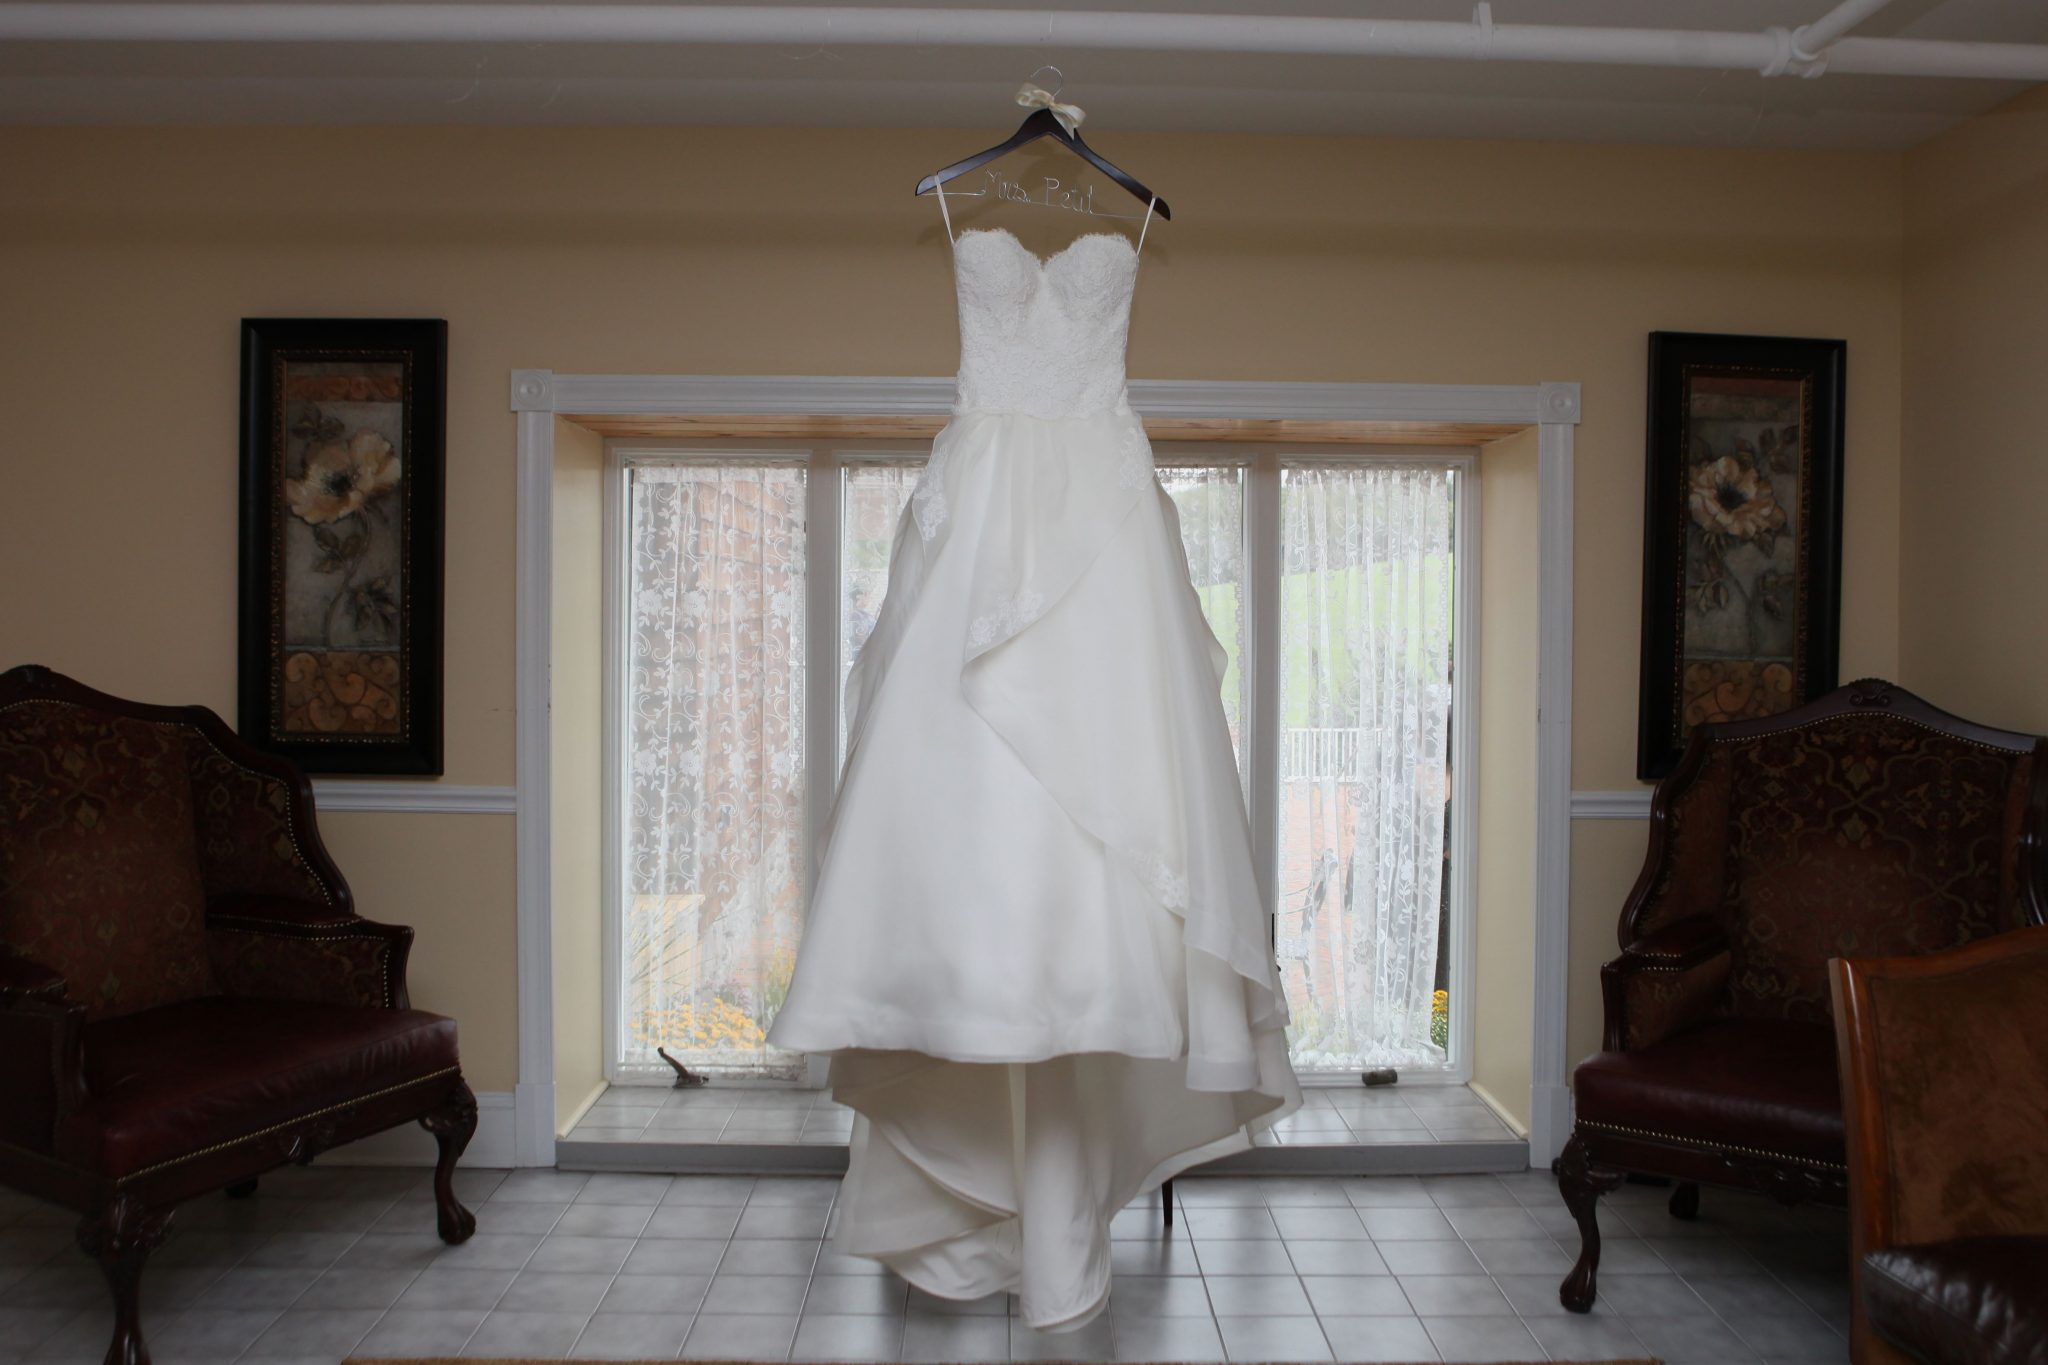 Bride's dress hangs in the bride's room before the wedding ceremony.